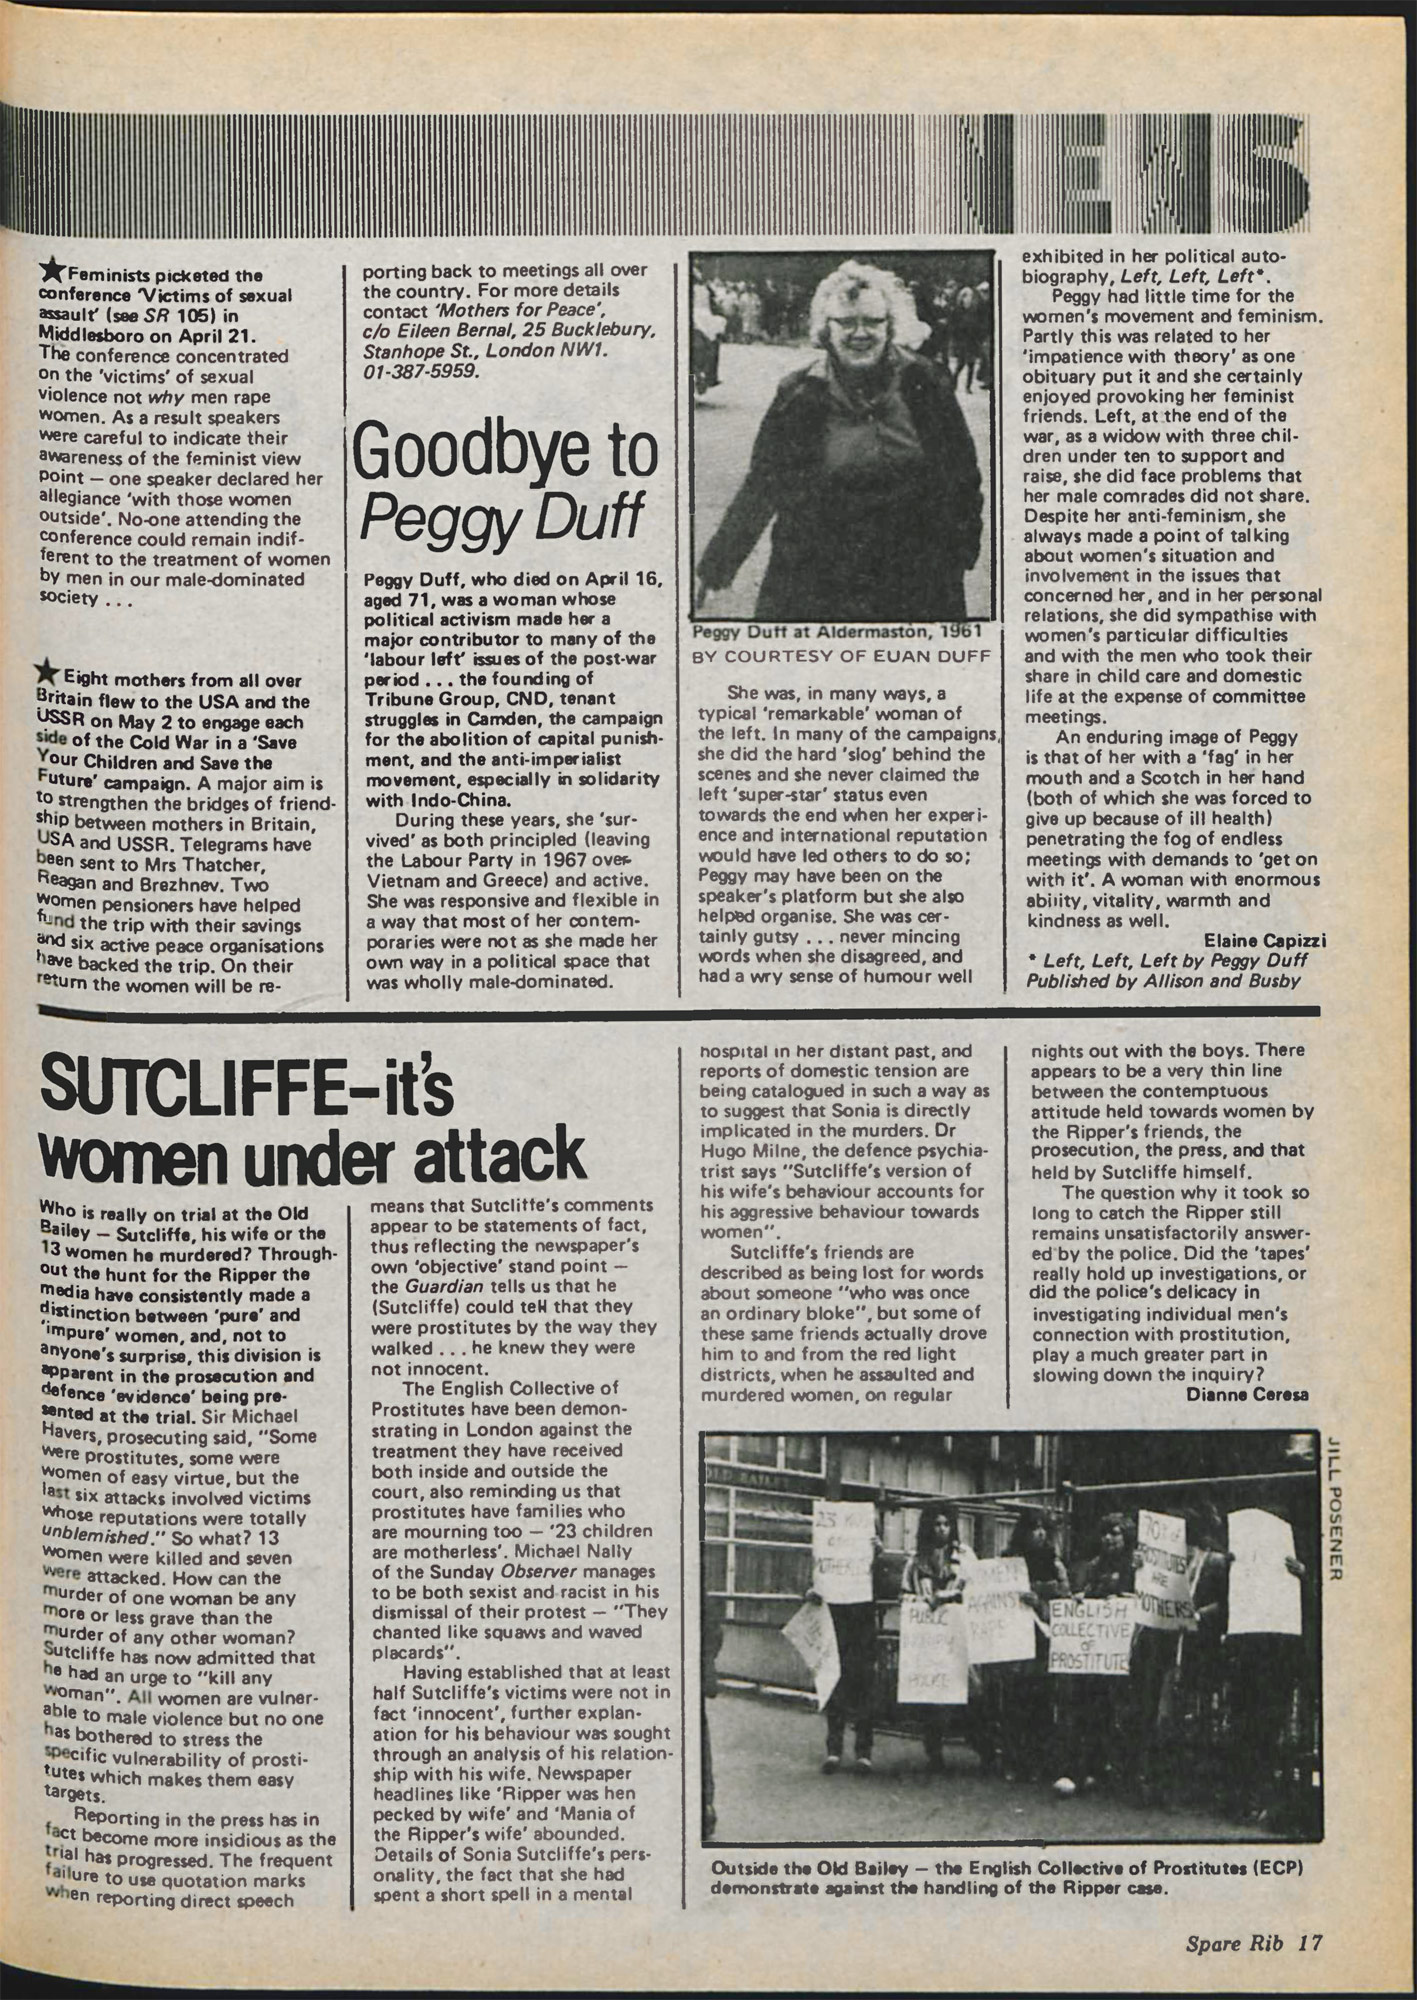 Spare Rib magazine issue 107 Yorkshire Ripper